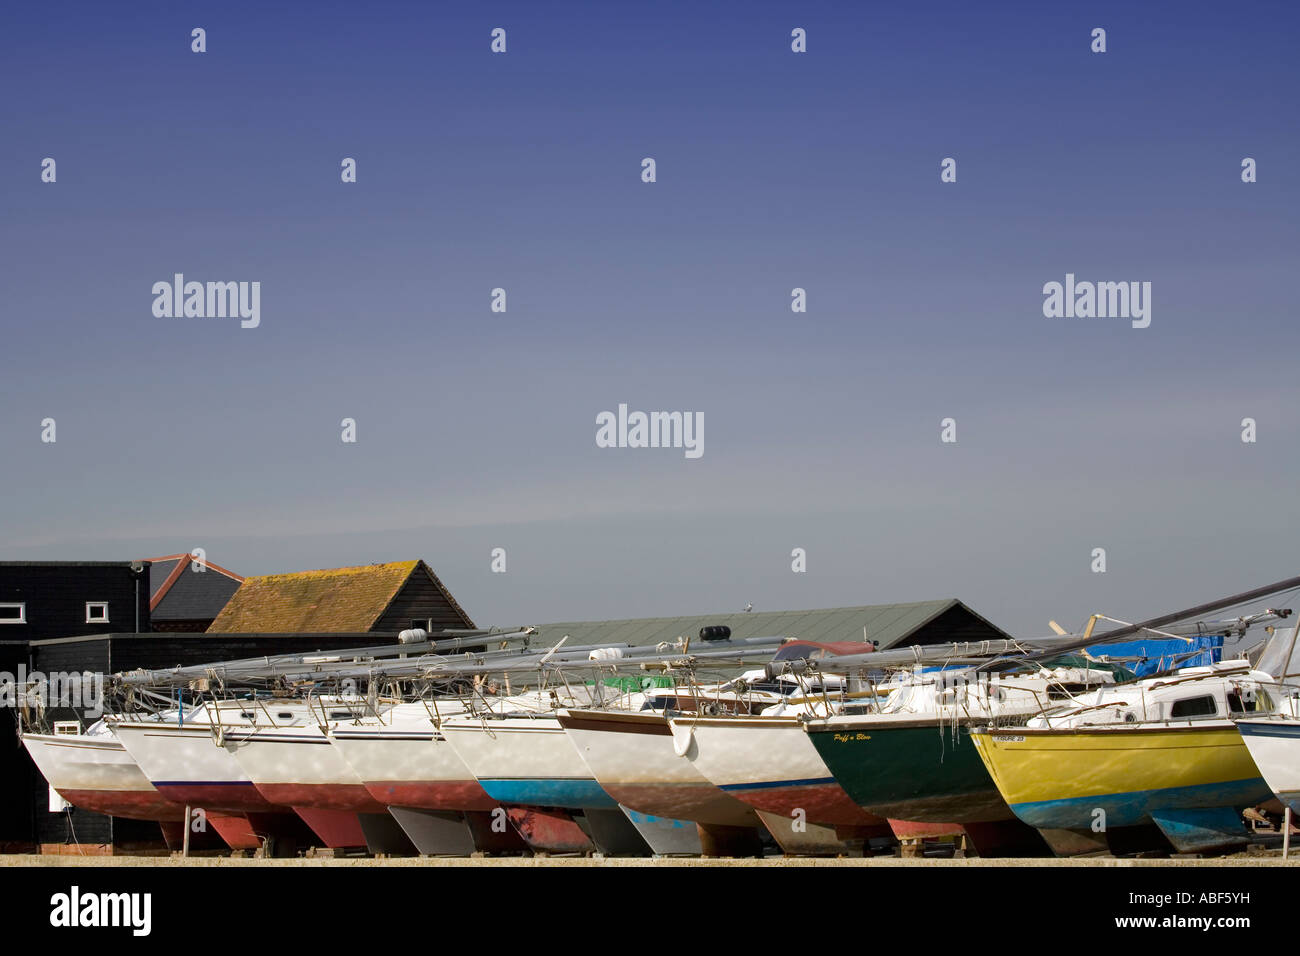 Boats at Dell Quay, Chichester Harbour, Sussex - Stock Image